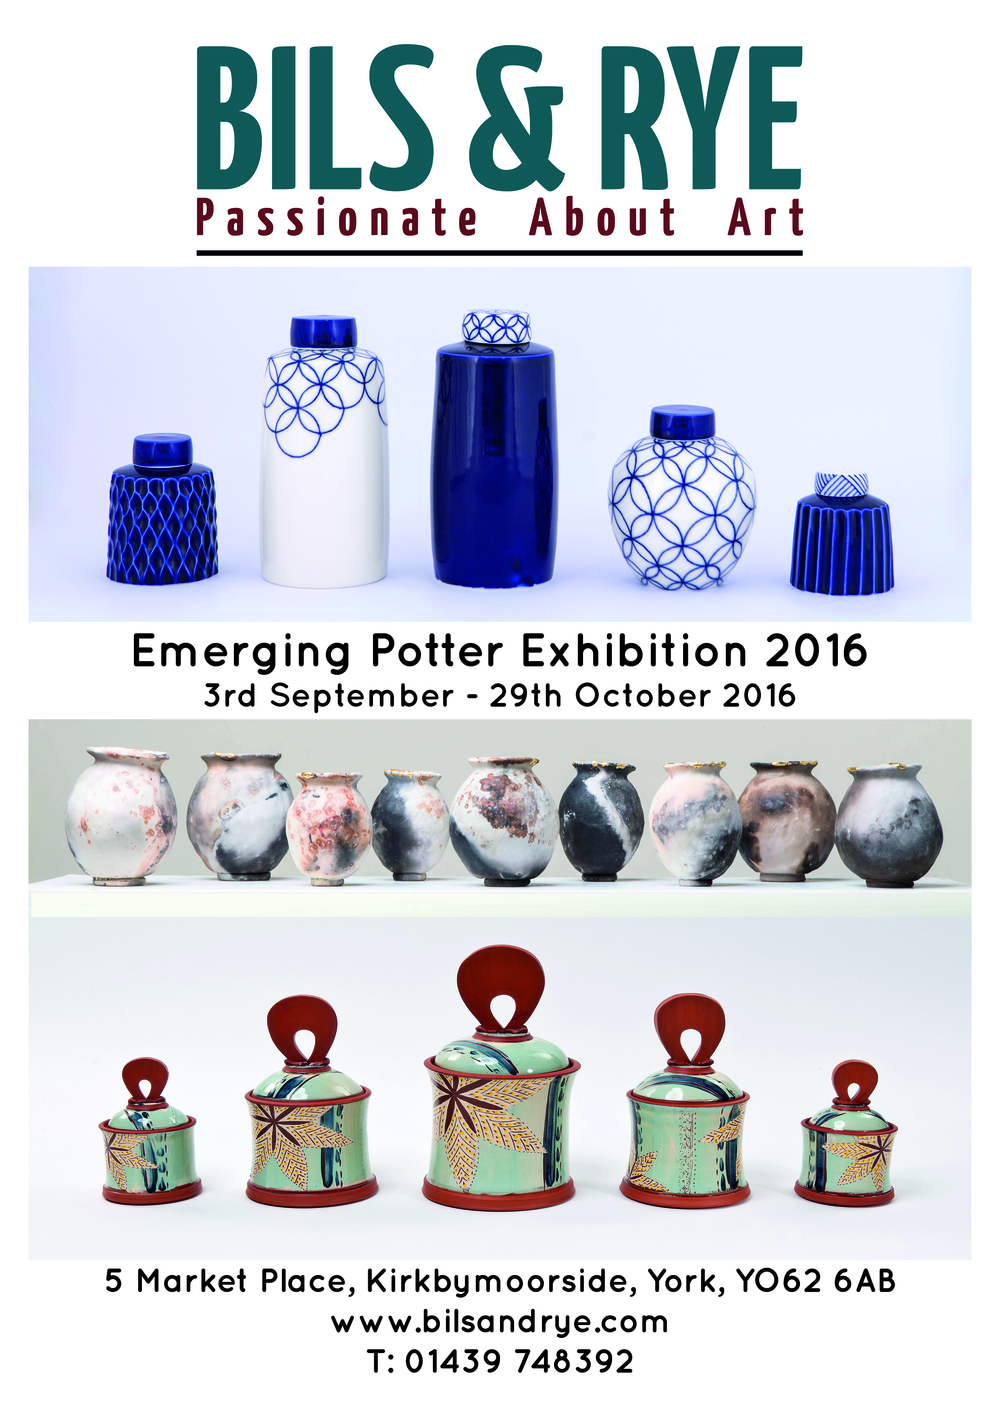 We kick off with the Emerging Potters Exhibition